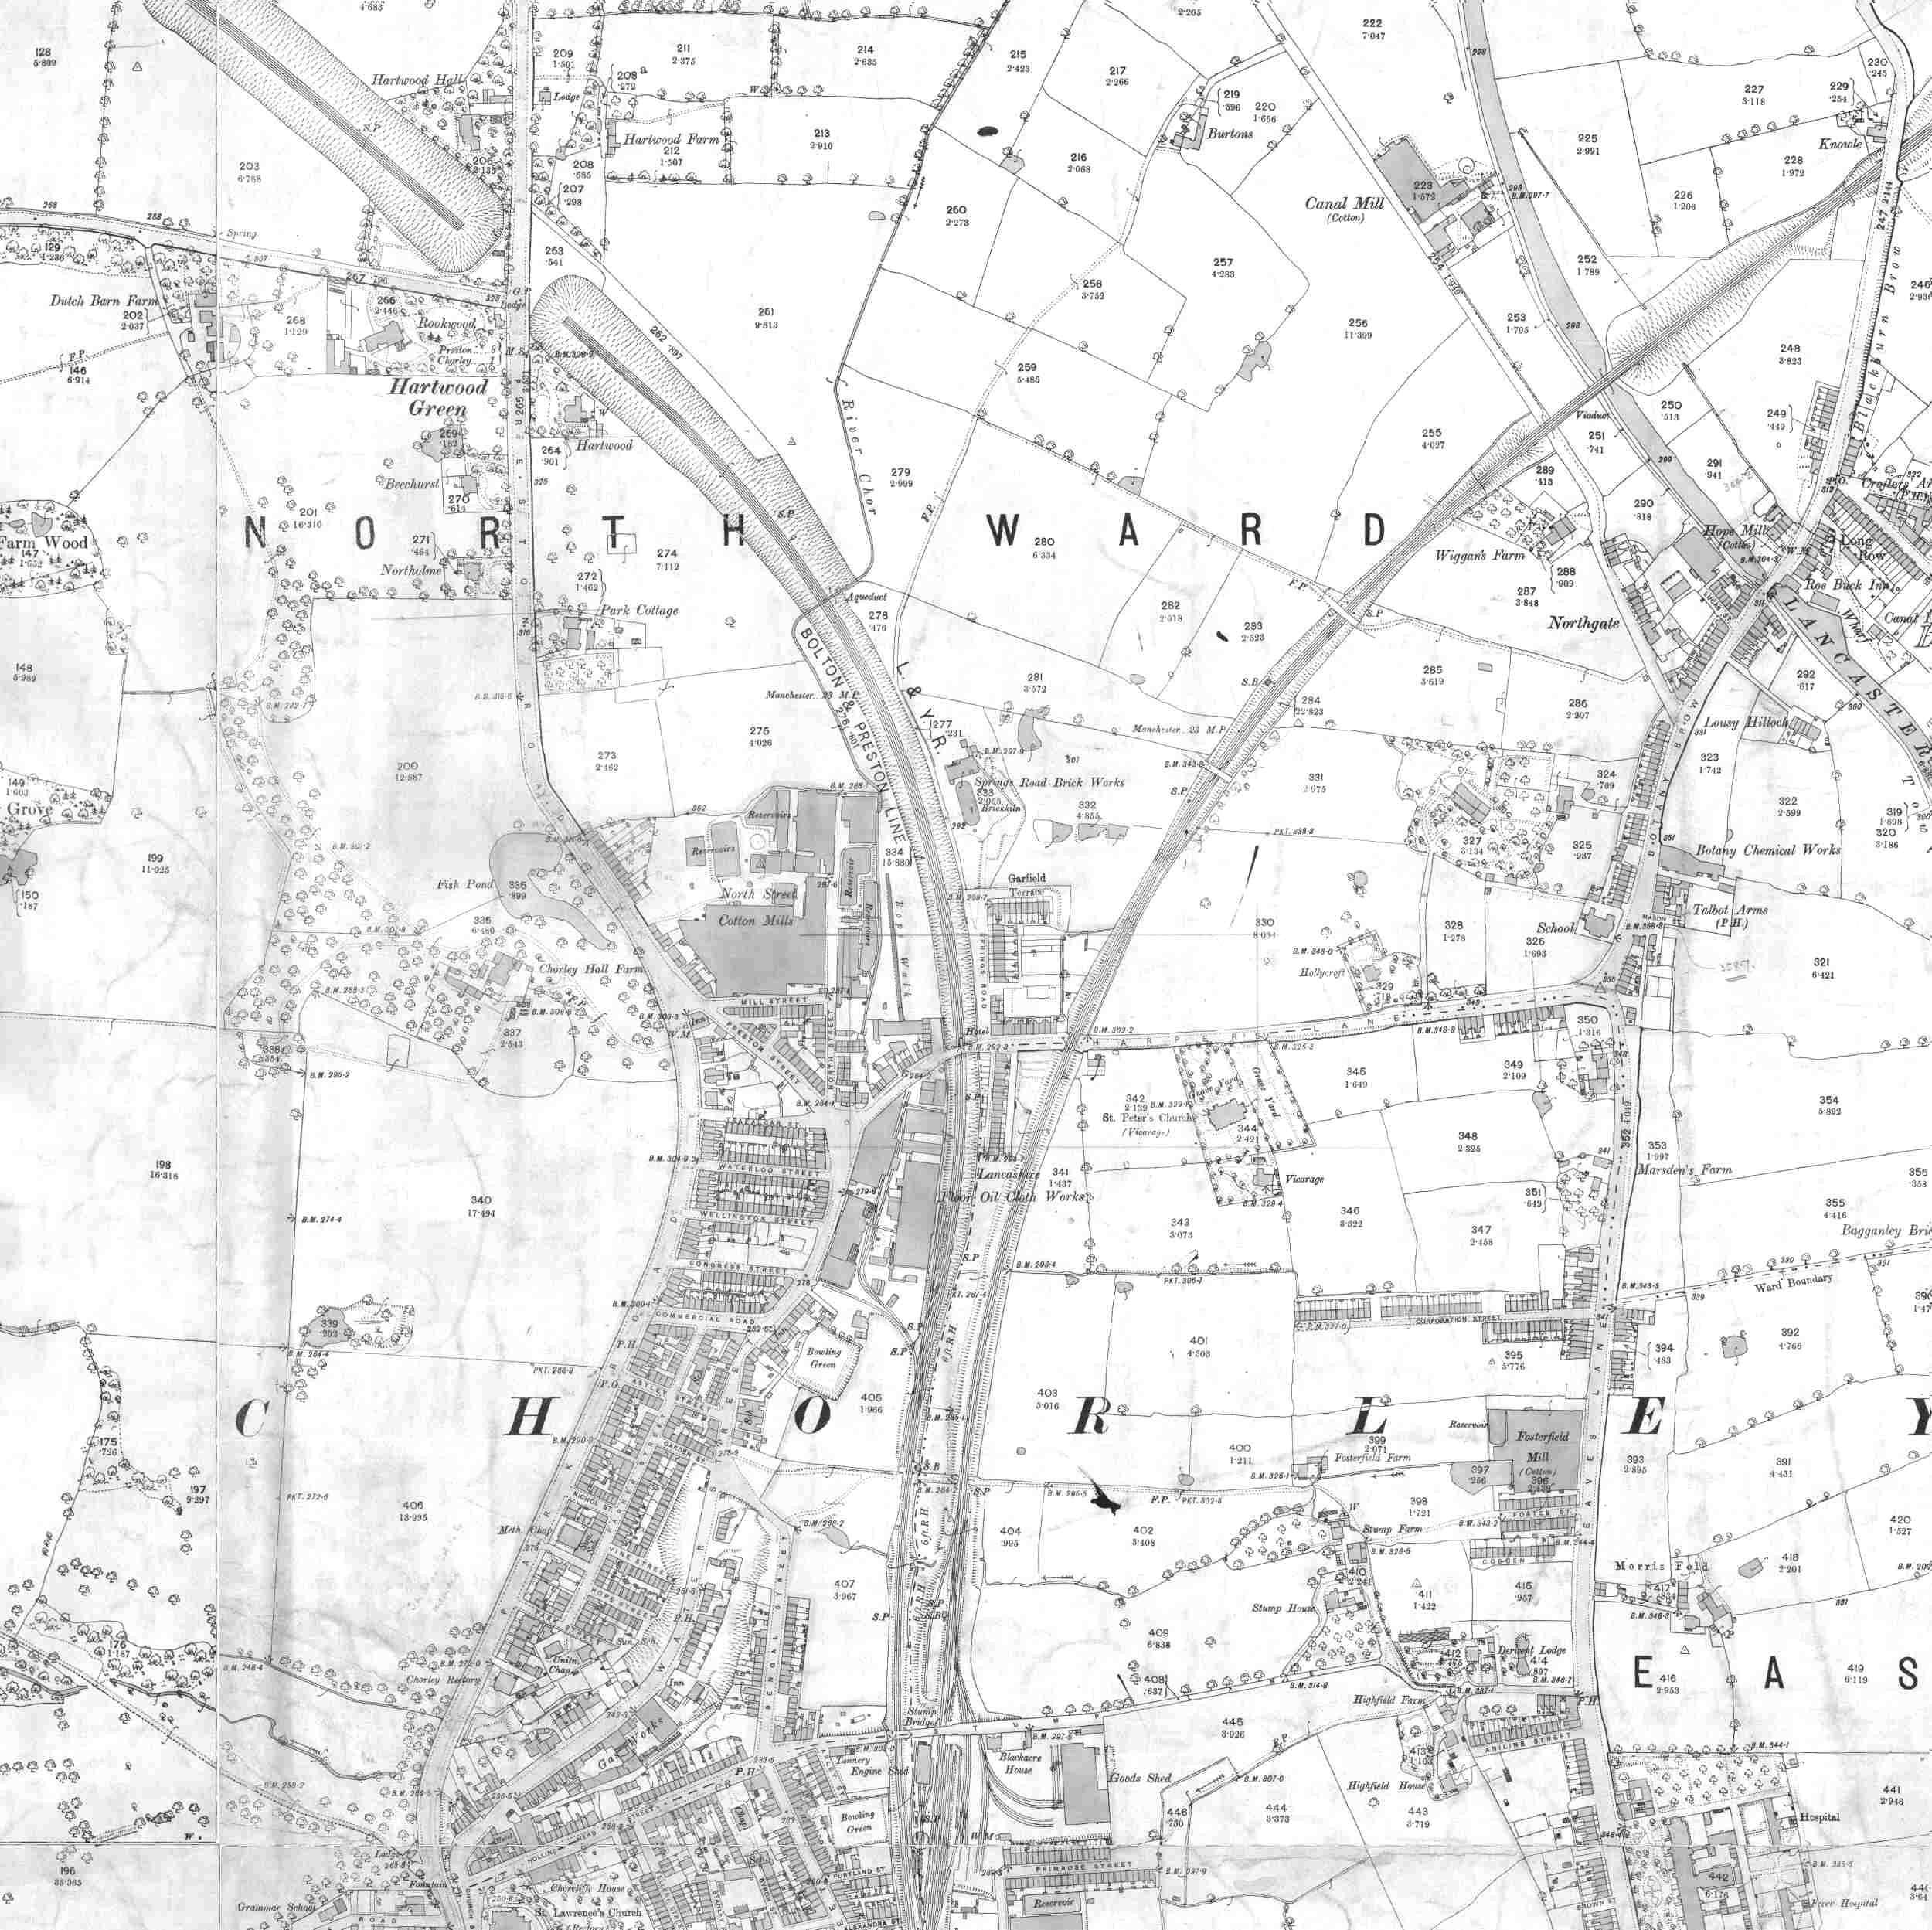 Lancashire County Council Environment Directorate Old Maps - Old os maps